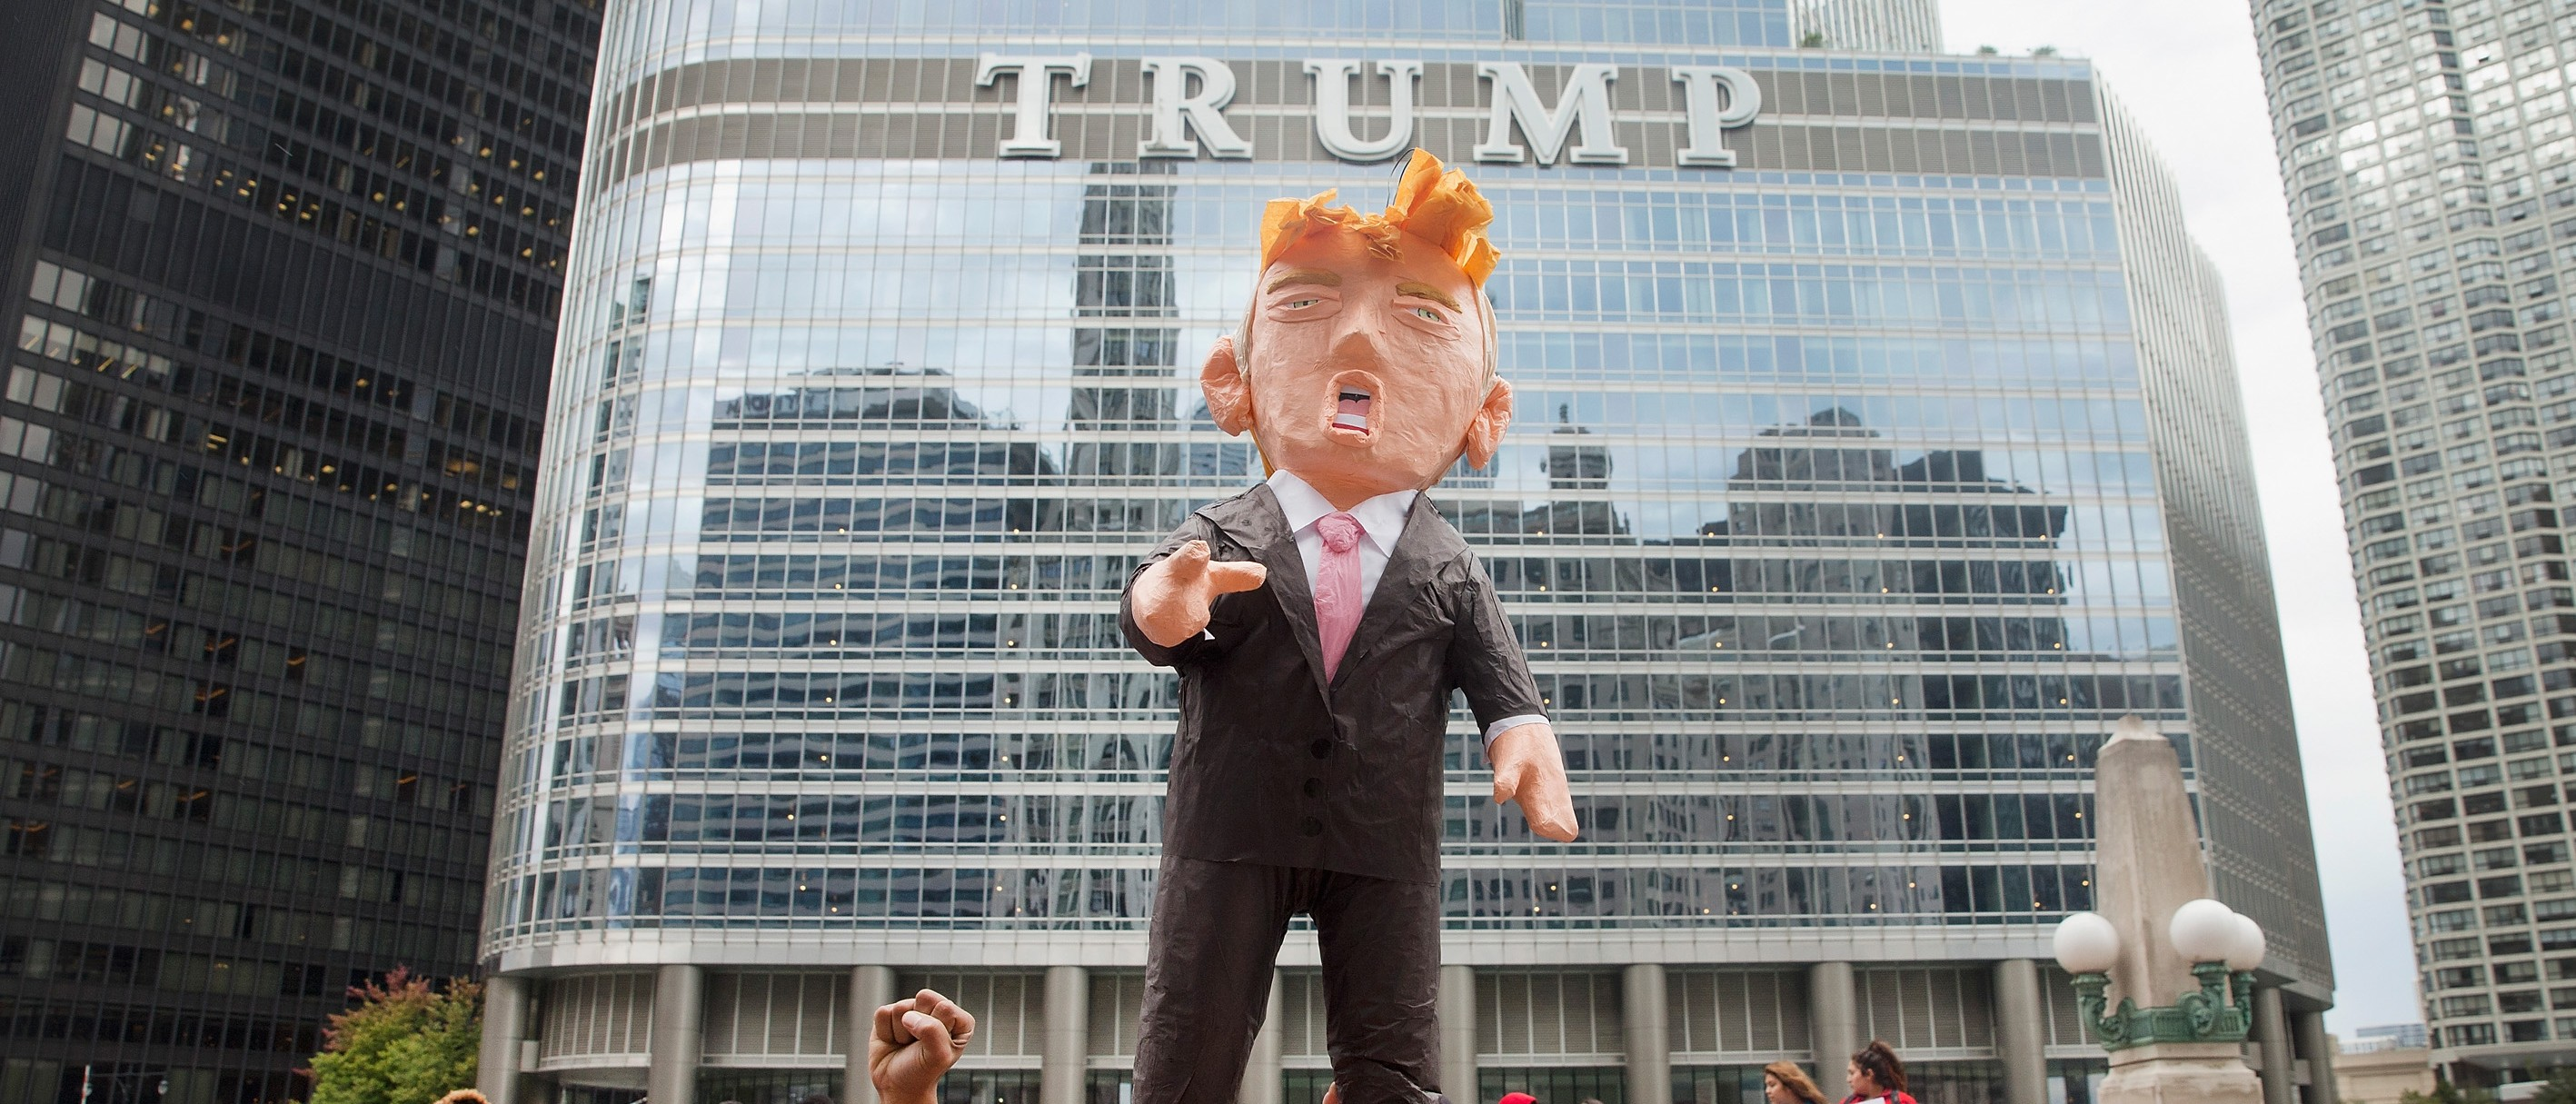 CHICAGO, IL - OCTOBER 12: Demonstrators hold up a piñata of Republican Presidential candidate Donald Trump during a protest outside Trump Tower on October 12, 2015 in Chicago, Illinois. About 250 demonstrators marched through downtown before holding a rally calling for immigration reform and fair wages in front of Trump Tower. Trump has been an outspoken proponent of a plan to deport undocumented immigrants. (Photo by Scott Olson/Getty Images)